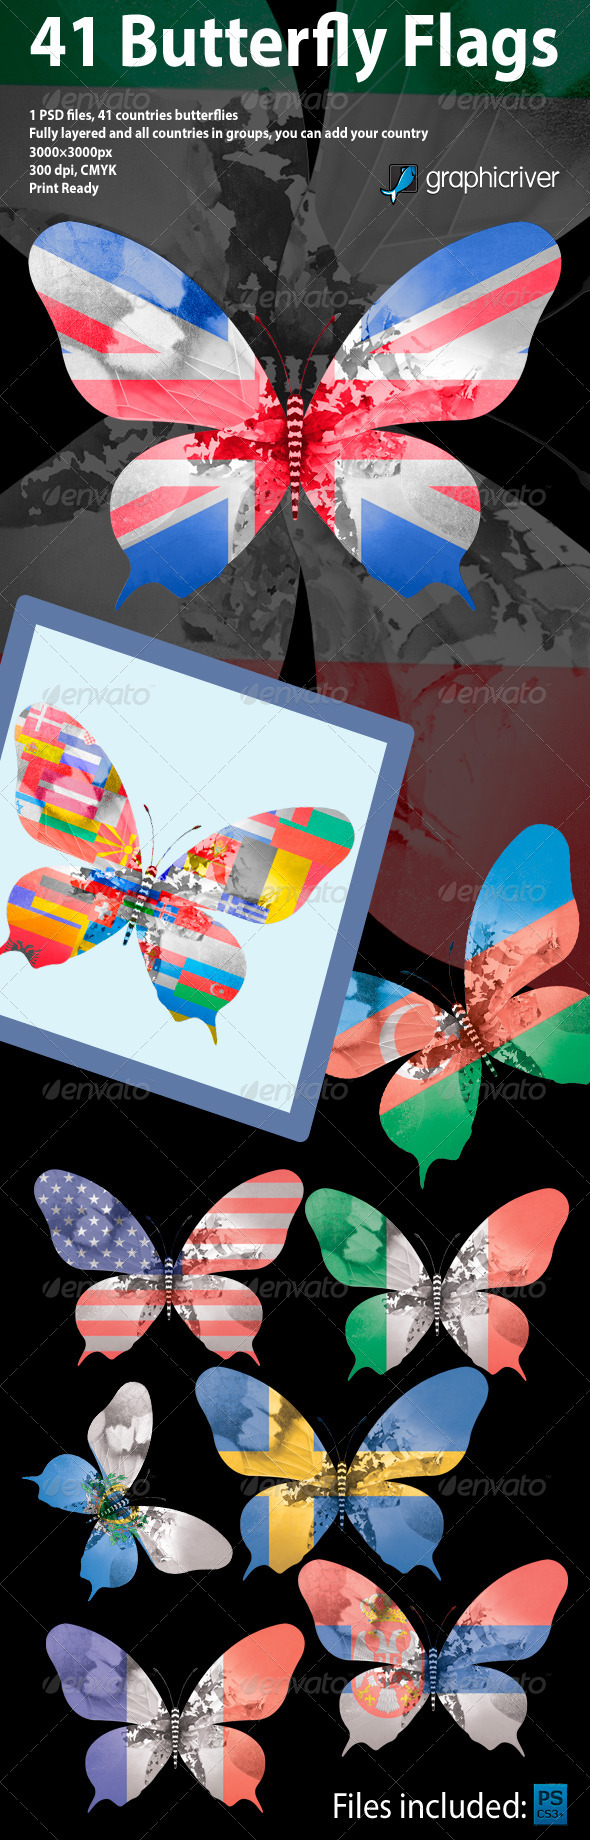 GraphicRiver 41 Butterfly Flags 4516255